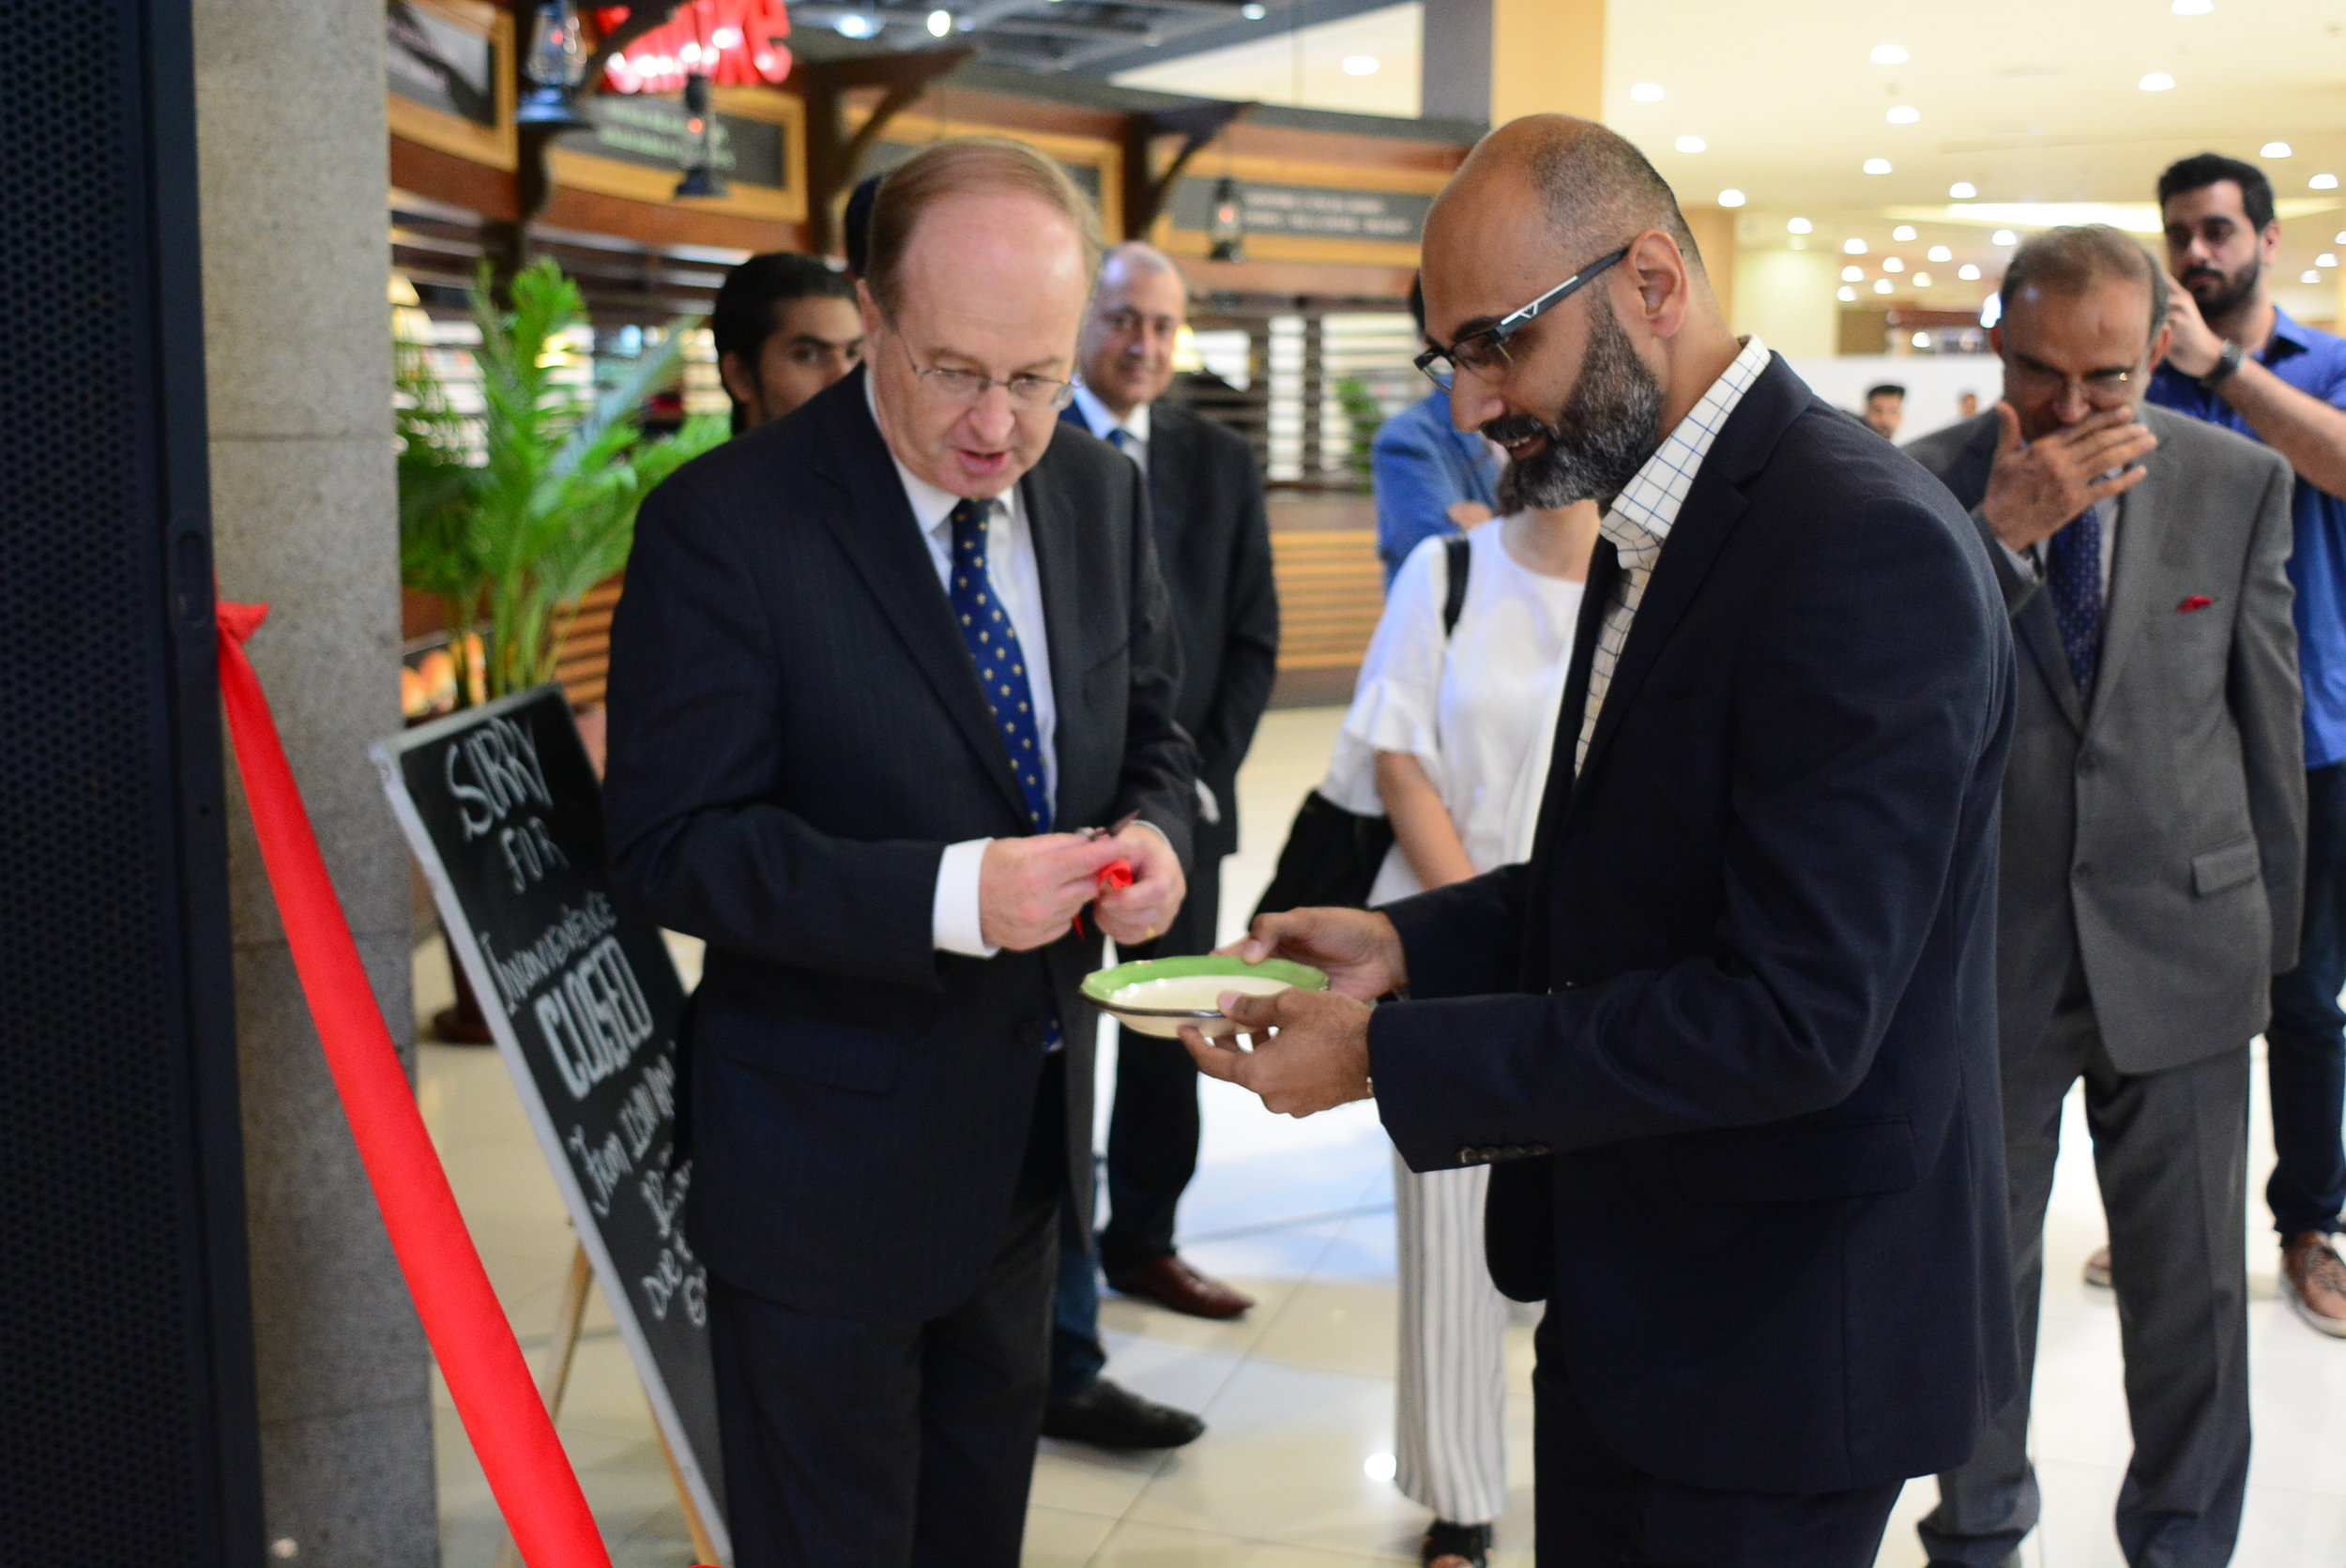 New Zealand High Commissioner H.E. Hamish MacMaster (left) with Esquires Pakistan CEO Jehanzeb Paracha.